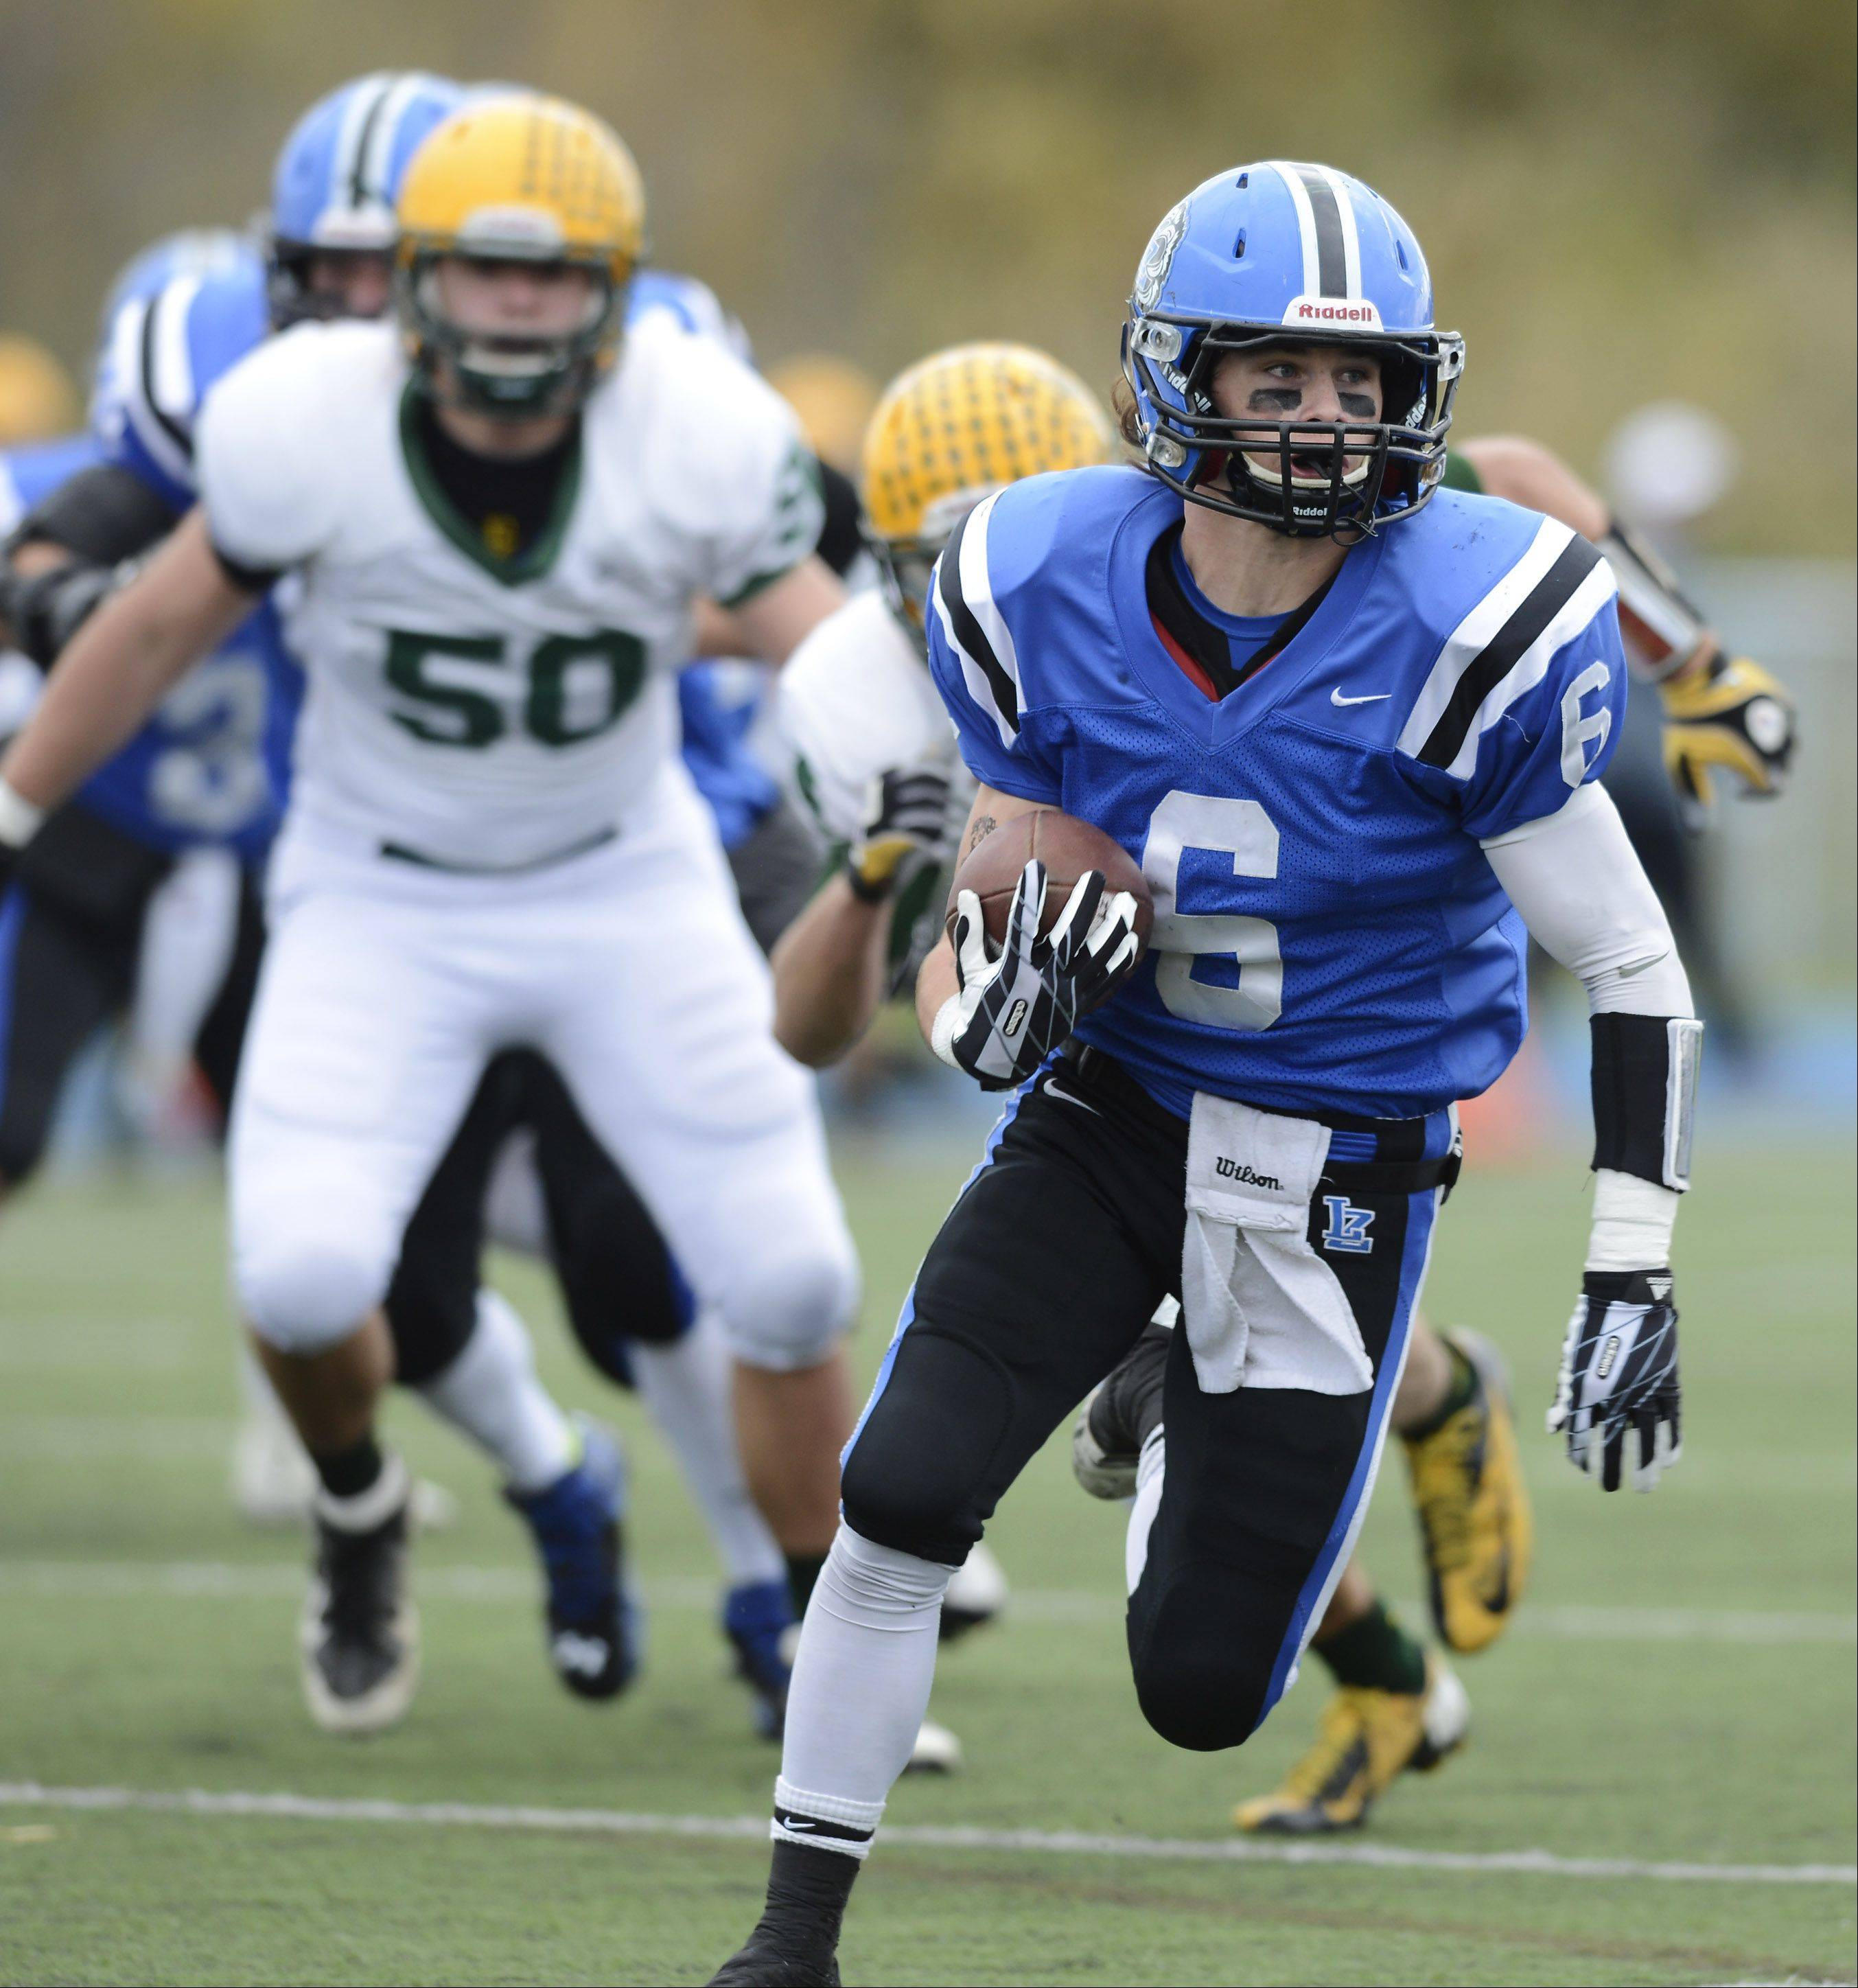 Lake Zurich's Sean Lynch carries the ball during Saturday's Class 7A playoff game against Elk Grove.